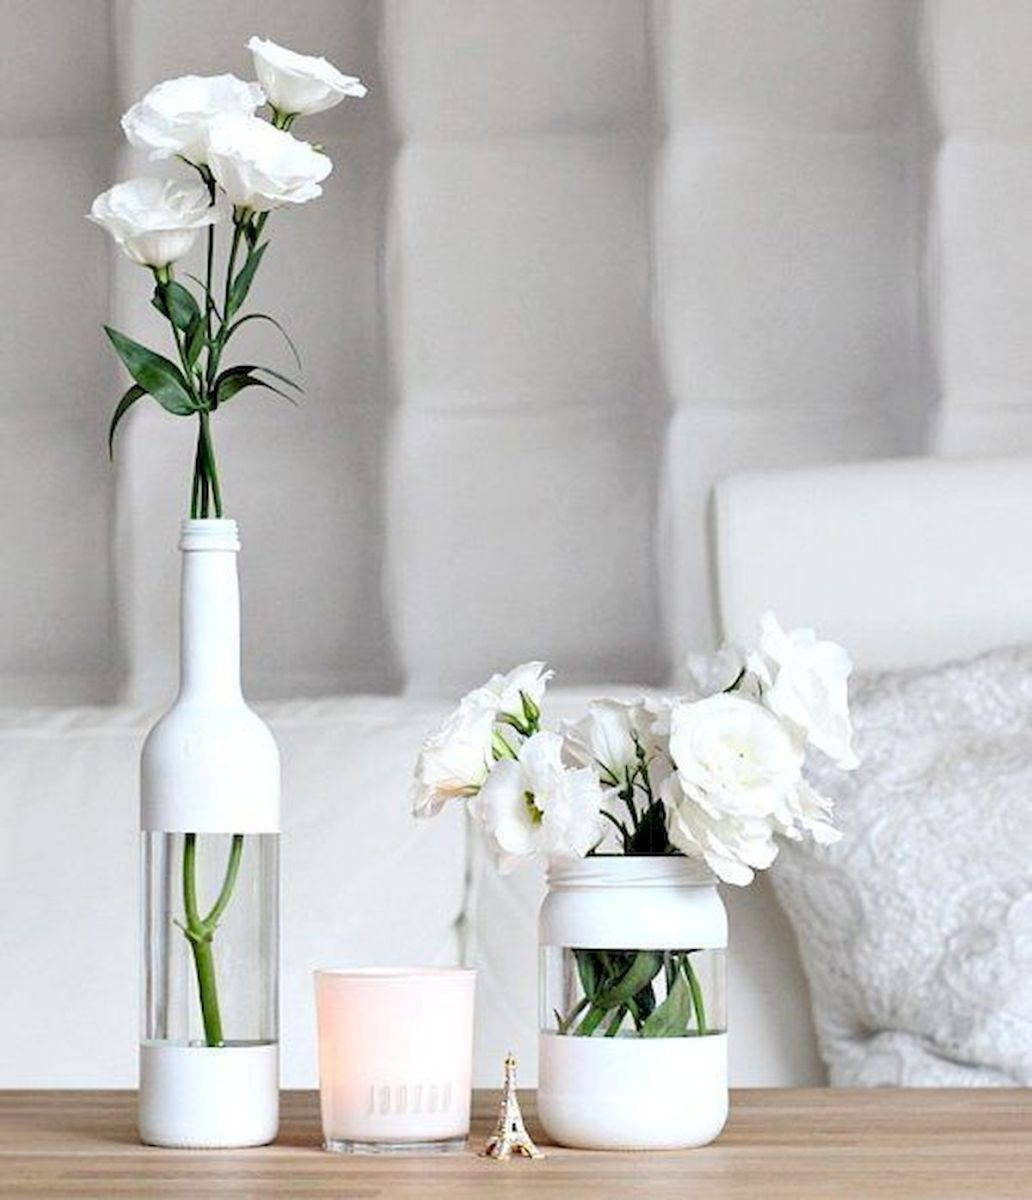 30 Awesome DIY Vase Ideas (18)